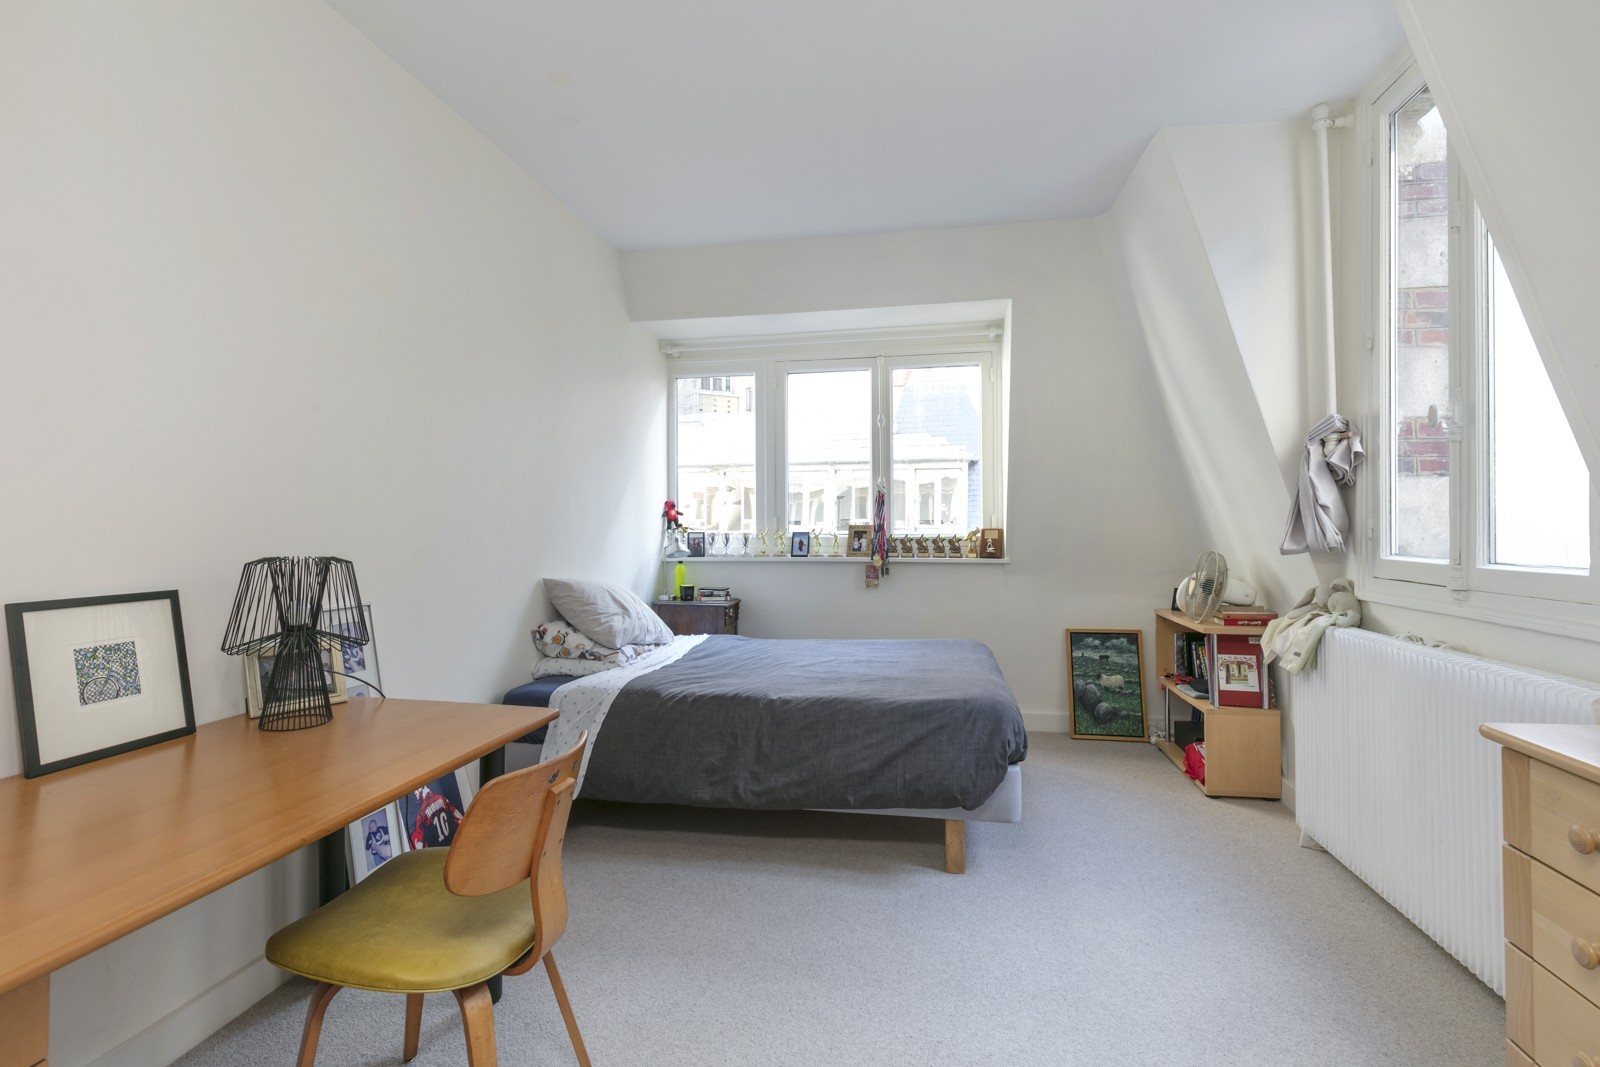 NEUILLY SABLONS - 7-BEDROOM FAMILY HOME